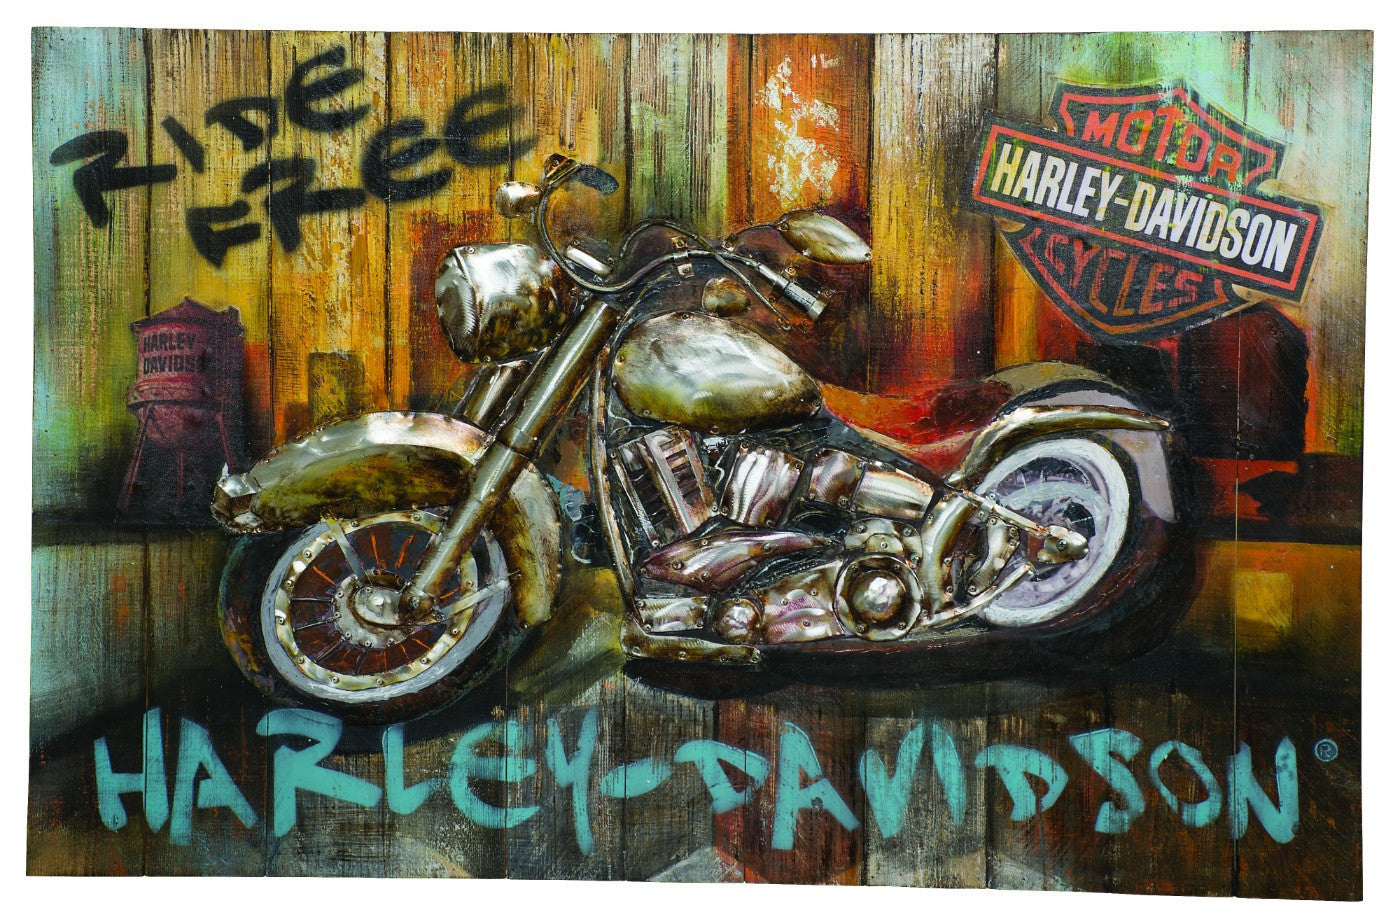 Harley Davidson Art Prints By Tommy Buy Posters Frames Canvas Digital Art Prints Small Compact Medium And Large Variants